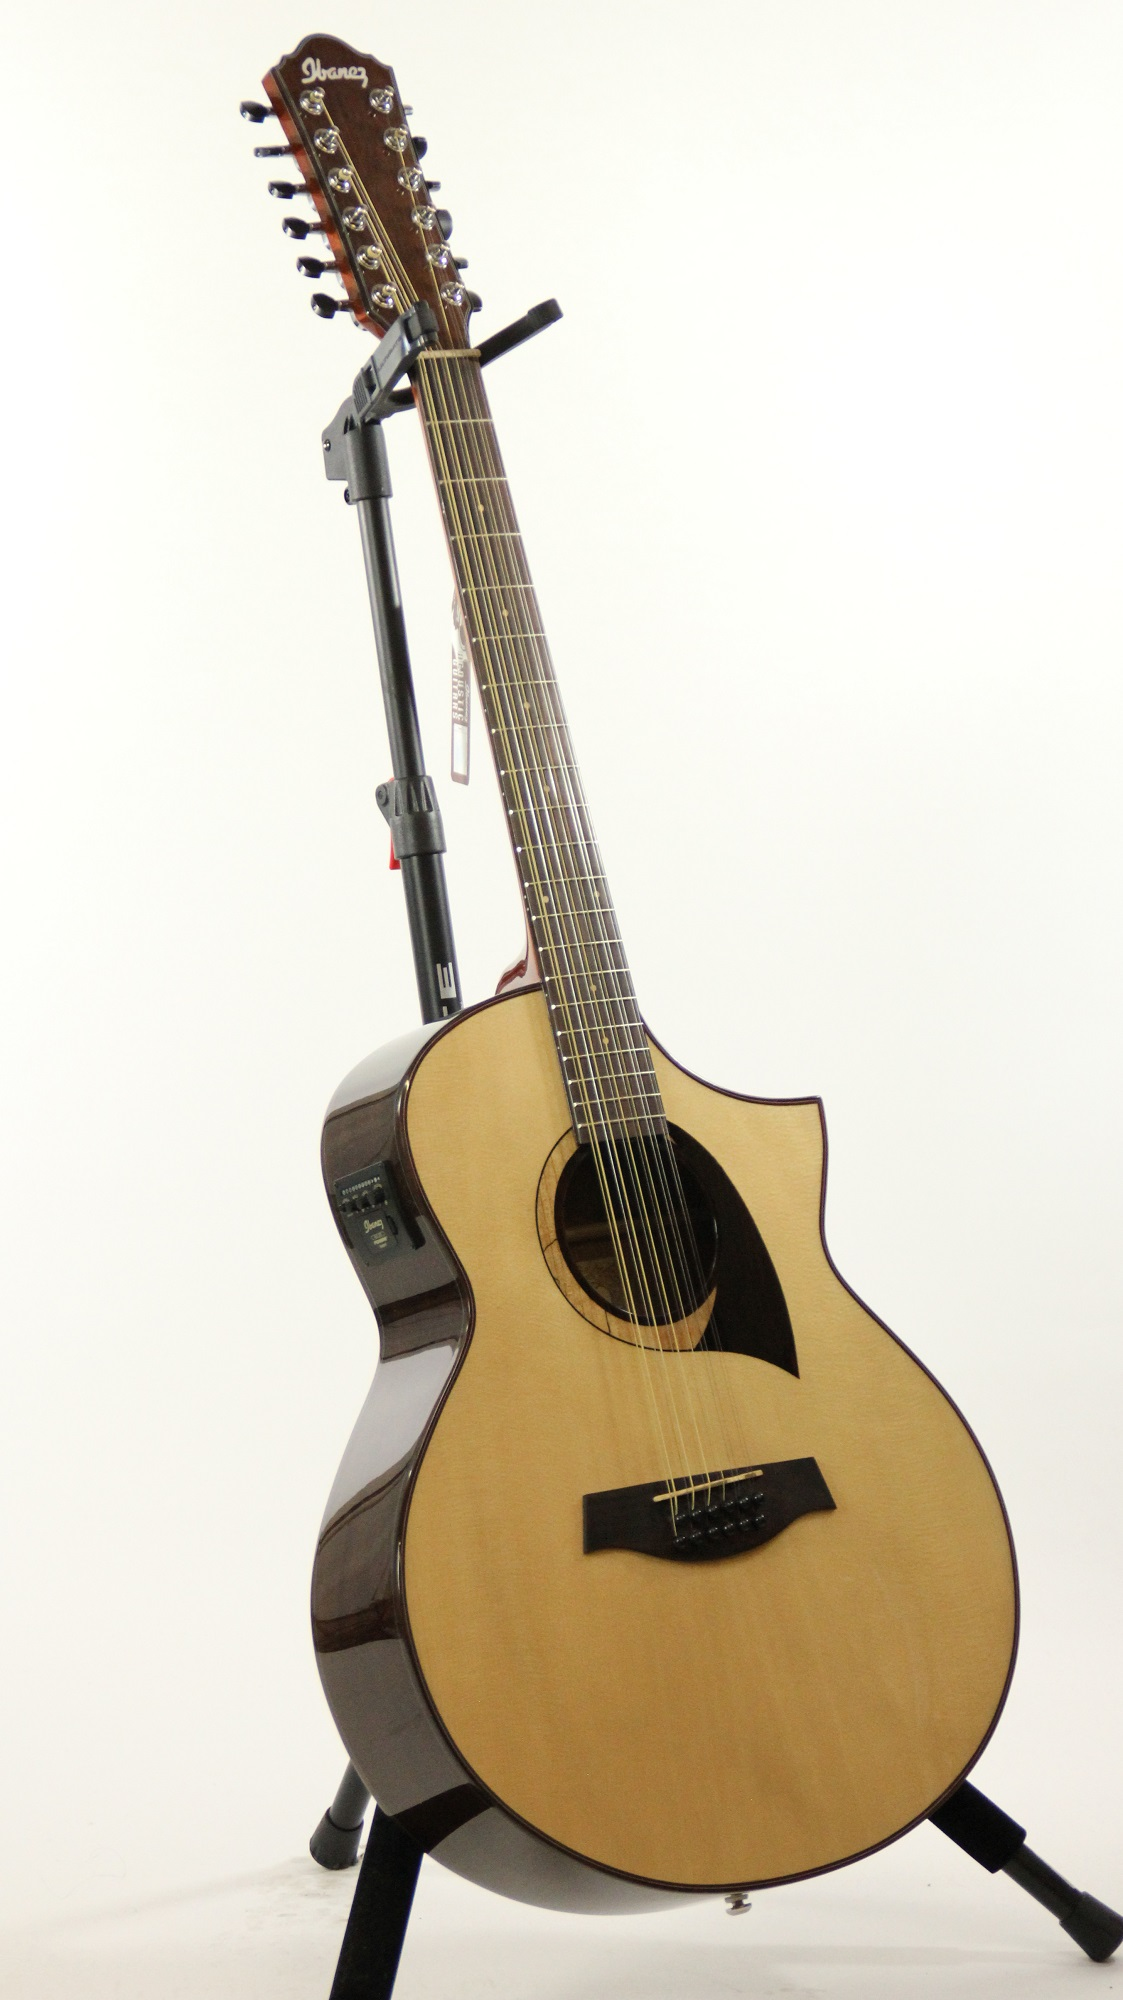 ibanez aew2212cd nt natural high gloss acoustic electric guitar 6. Black Bedroom Furniture Sets. Home Design Ideas